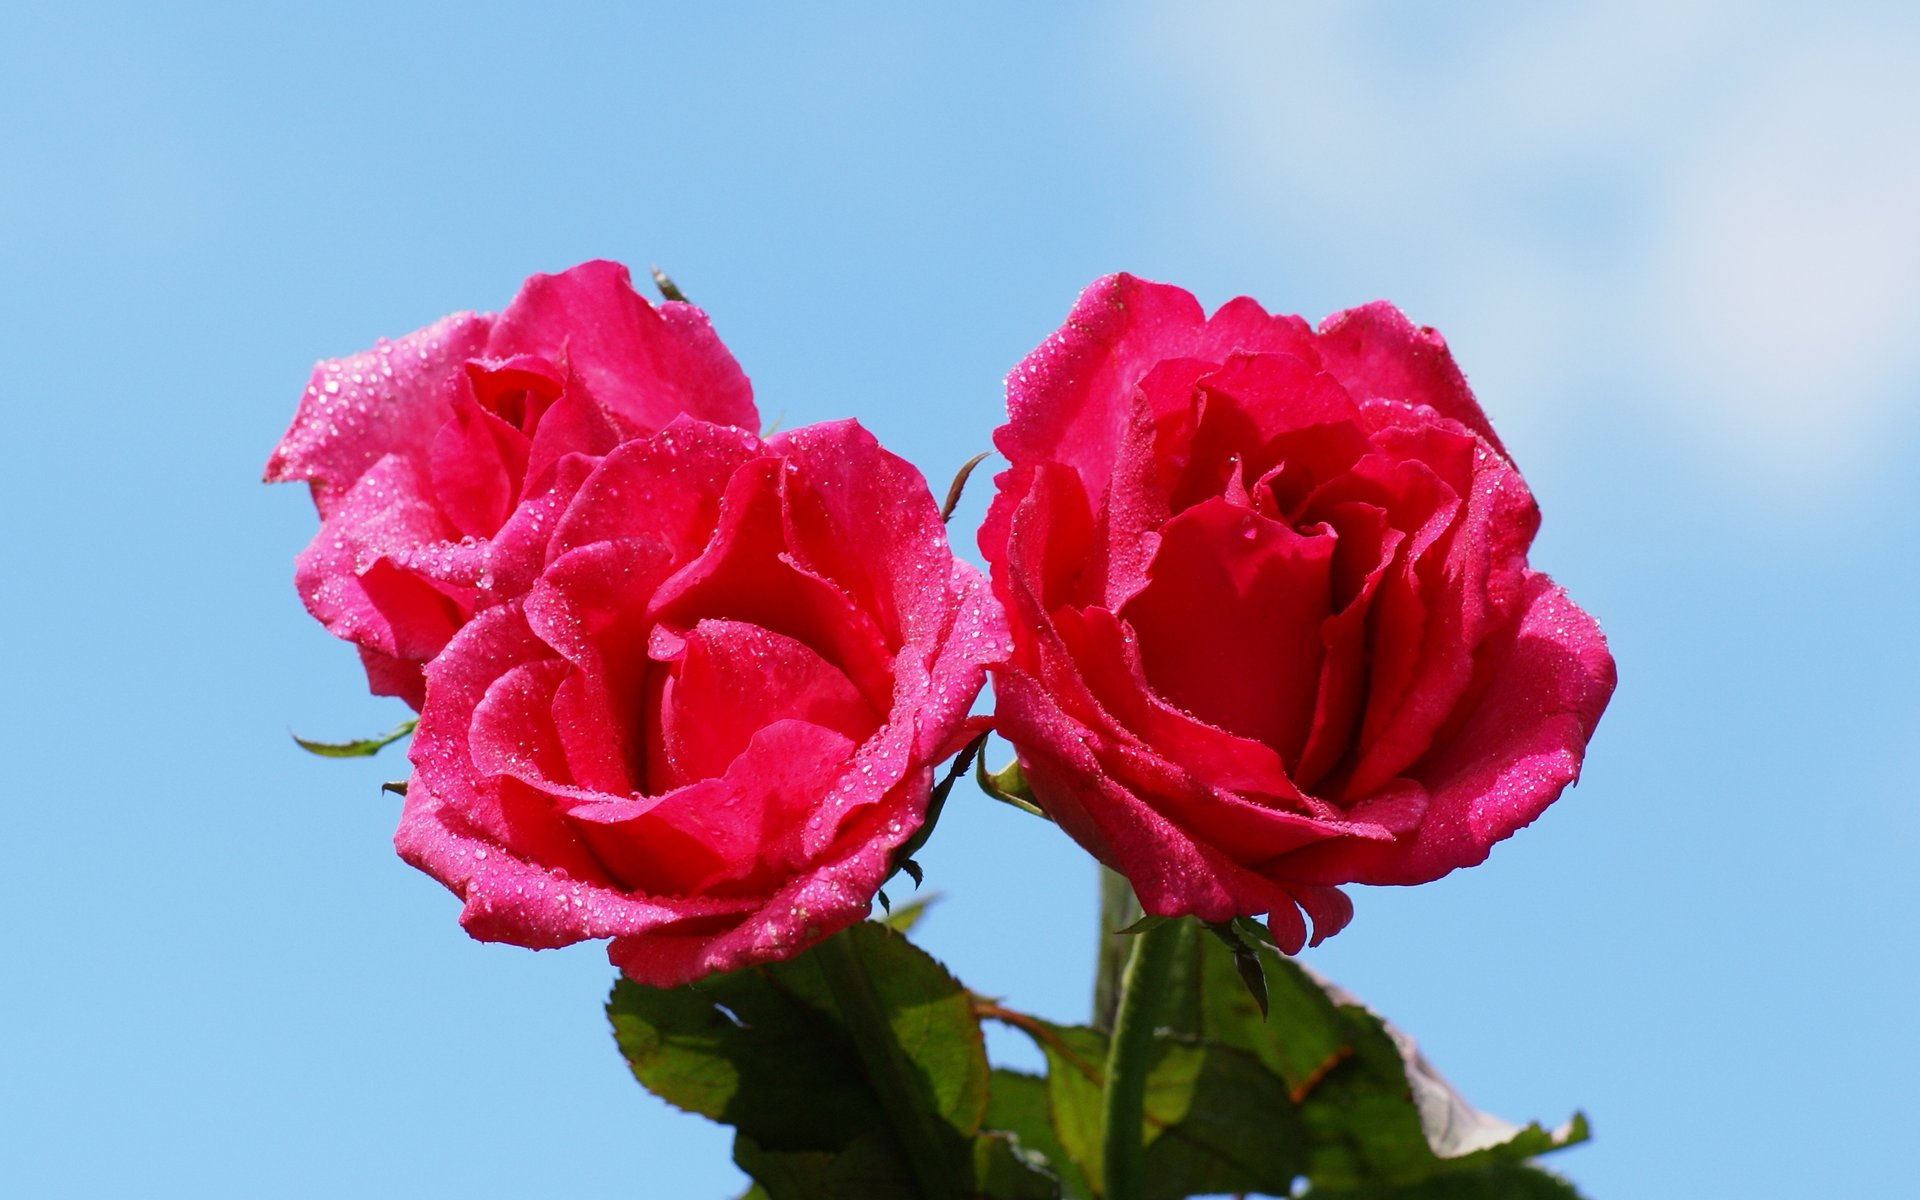 wallpapers widescreen pink roses - photo #22